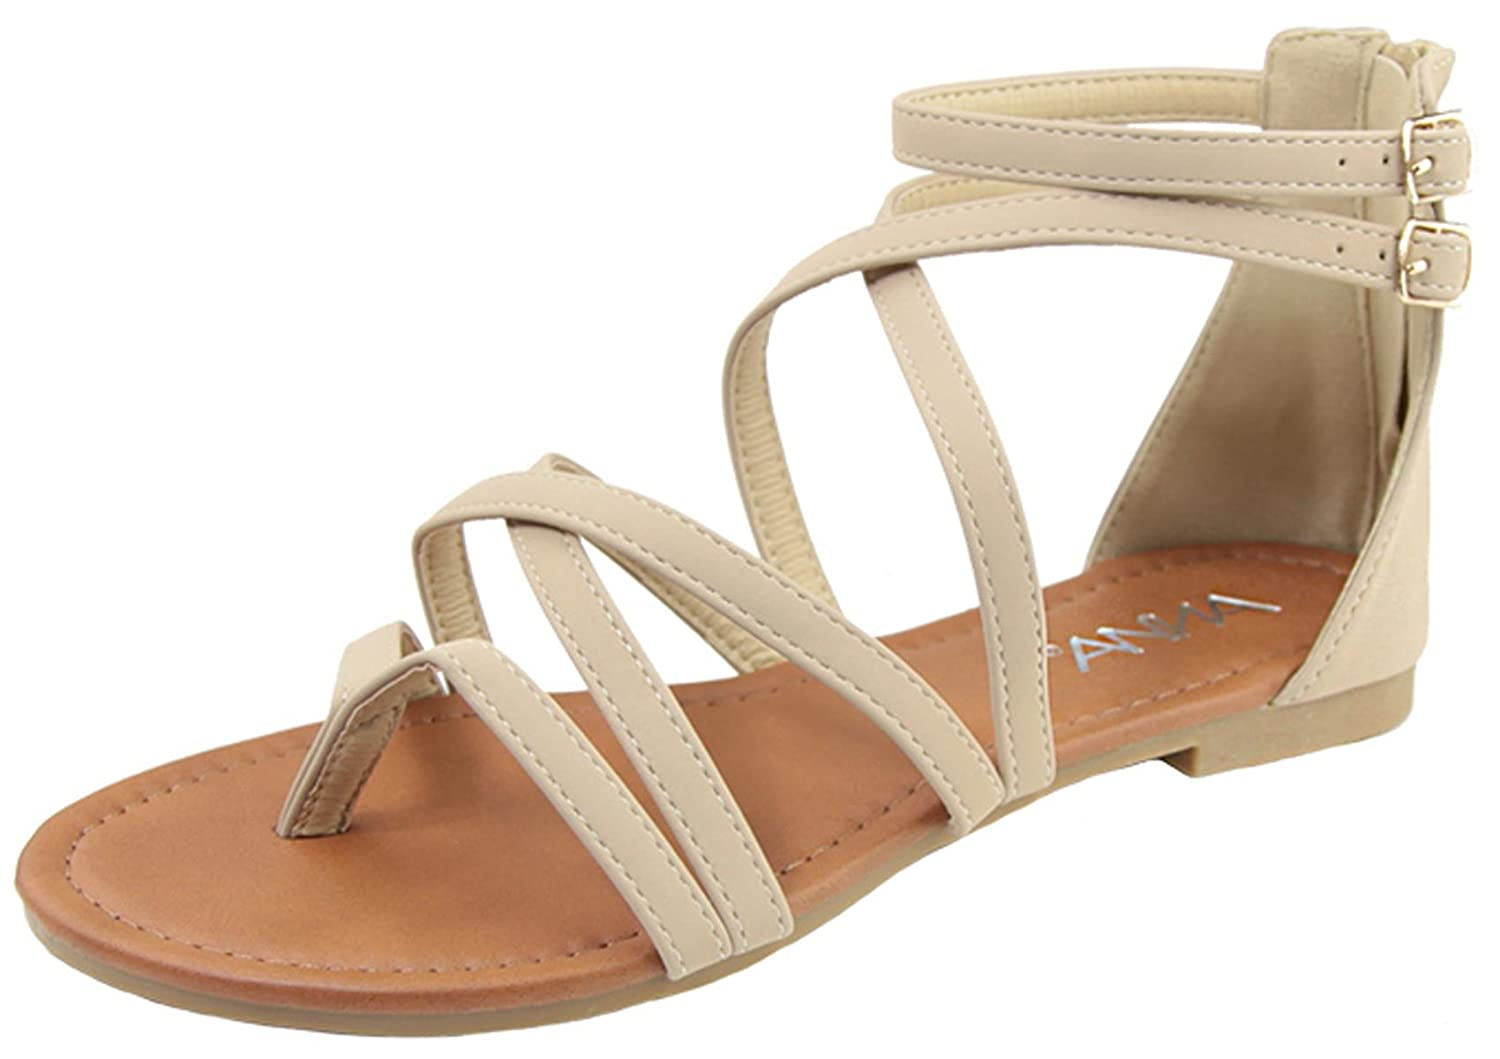 ccae718e420 Amazon.com  Anna Shoes Women s Strappy Buckle Accent Zip Heel Flat Sandal   Shoes